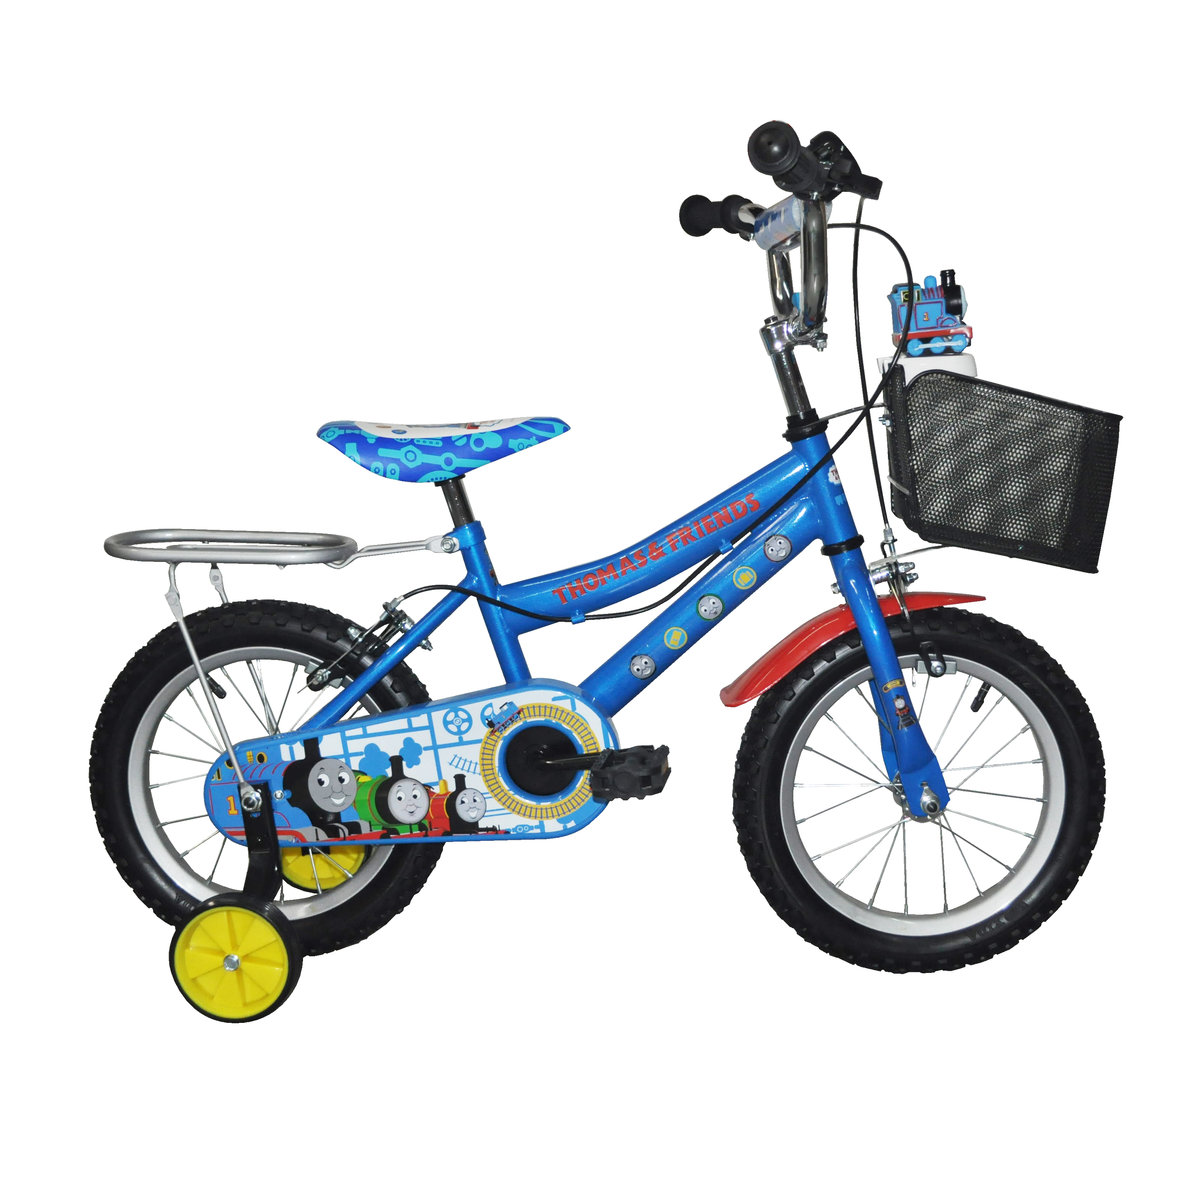 Thomas & Friends 14'' Bike